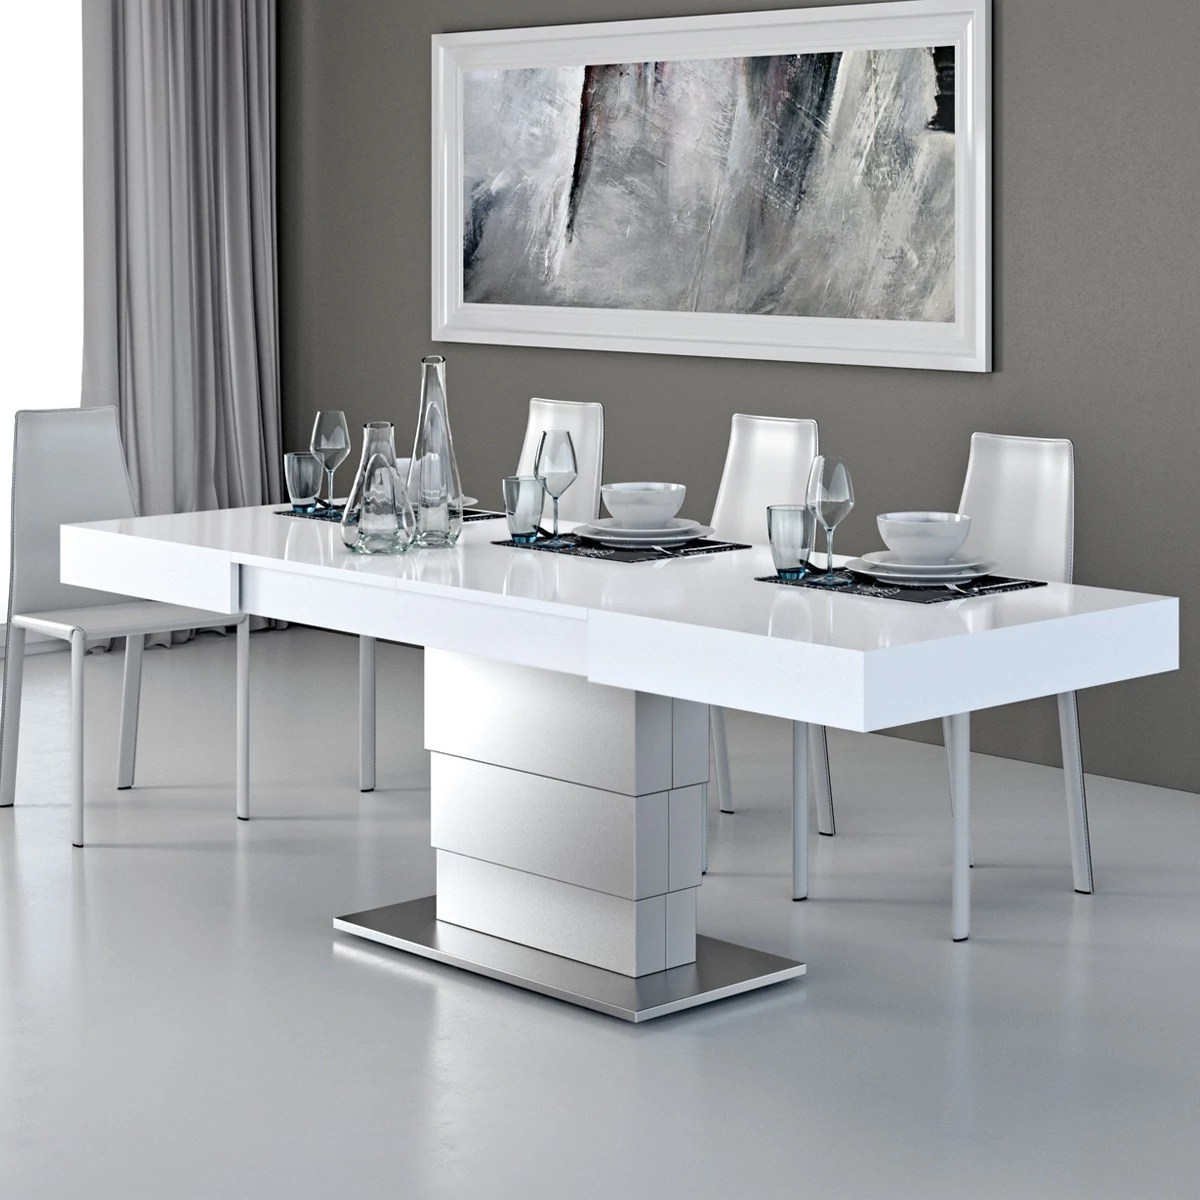 Table Basse Qui Se Transforme En Table Haute Table Basse Modulable Ares Fold Inox Zendart Design